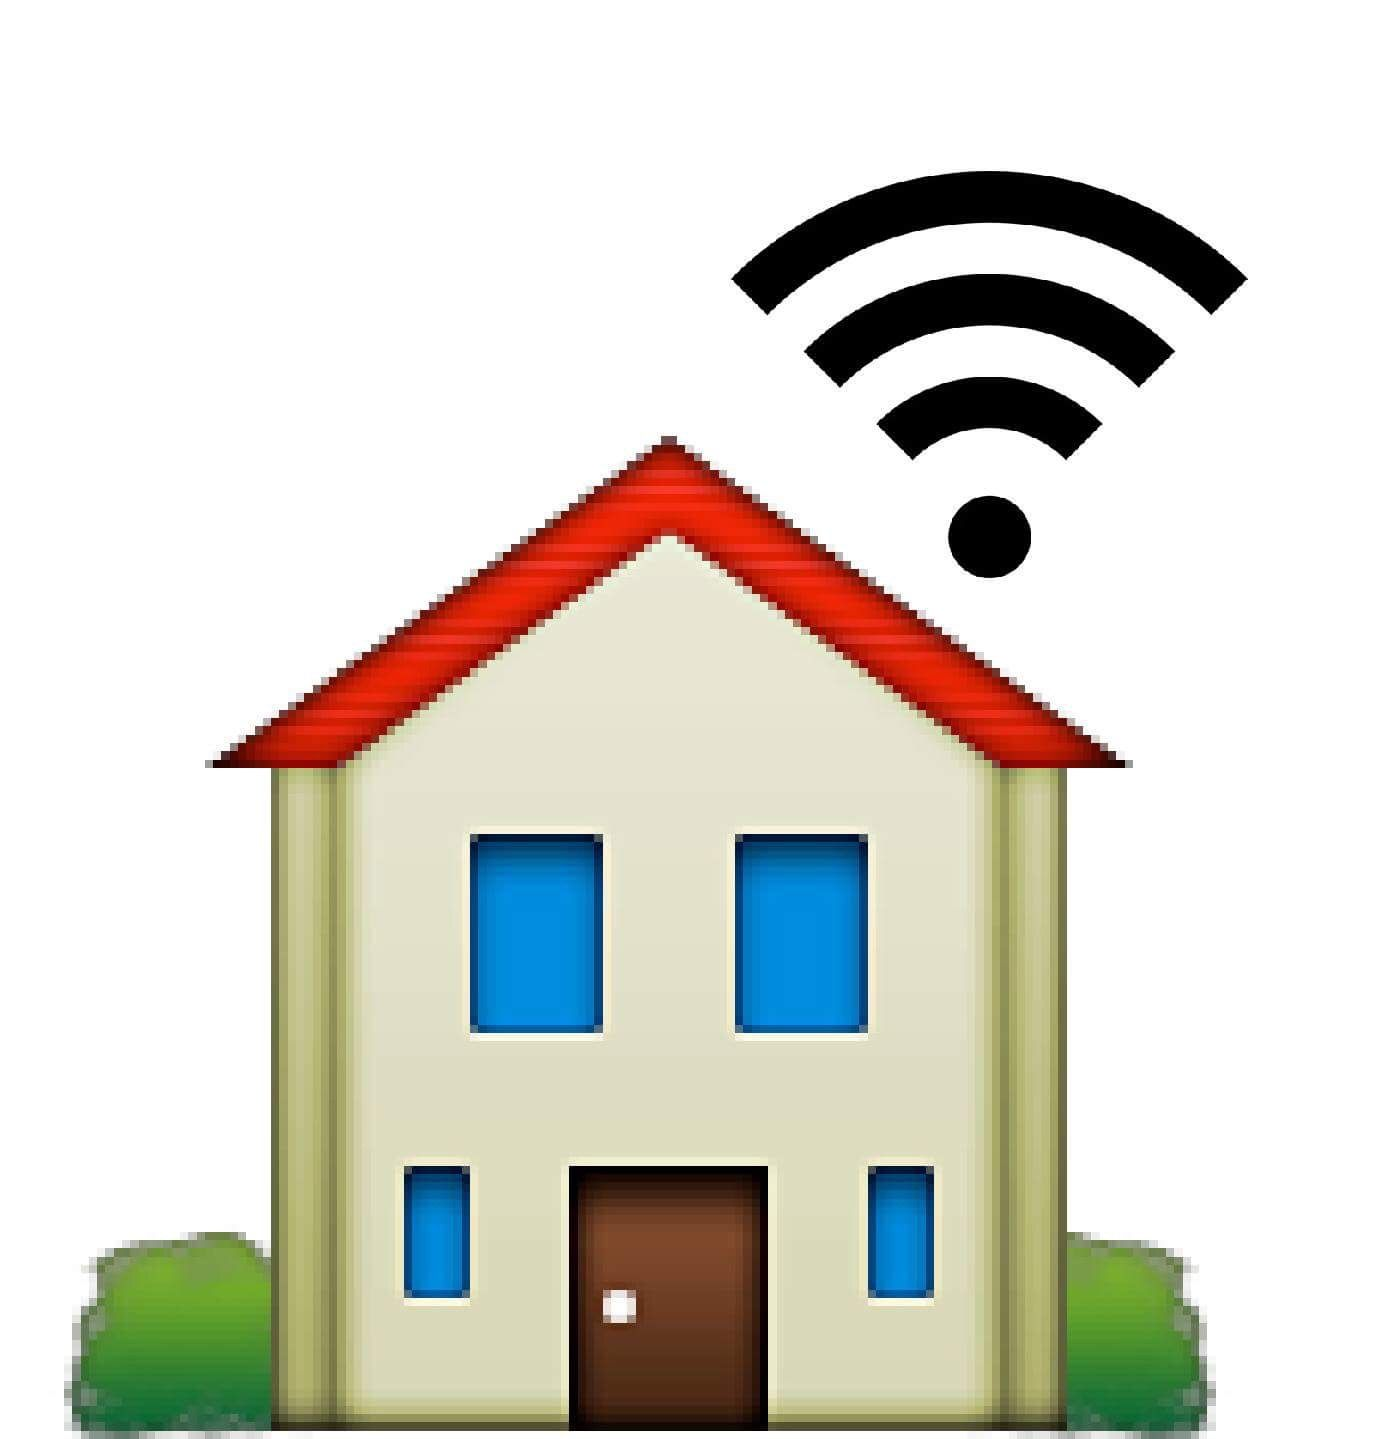 Welcome on our IG! Our page is dedicated to the promotion of our project in Web Marketing course and to smart house. It would be great if you could help us by going on our website, subscribe to the newsletter and fill in the survey and giving your email address! Thank you so much!  #connectedobjects #smarthome #technology #smarthome #technology #hightech #relax #ALT #WCAG #WAI #W3C